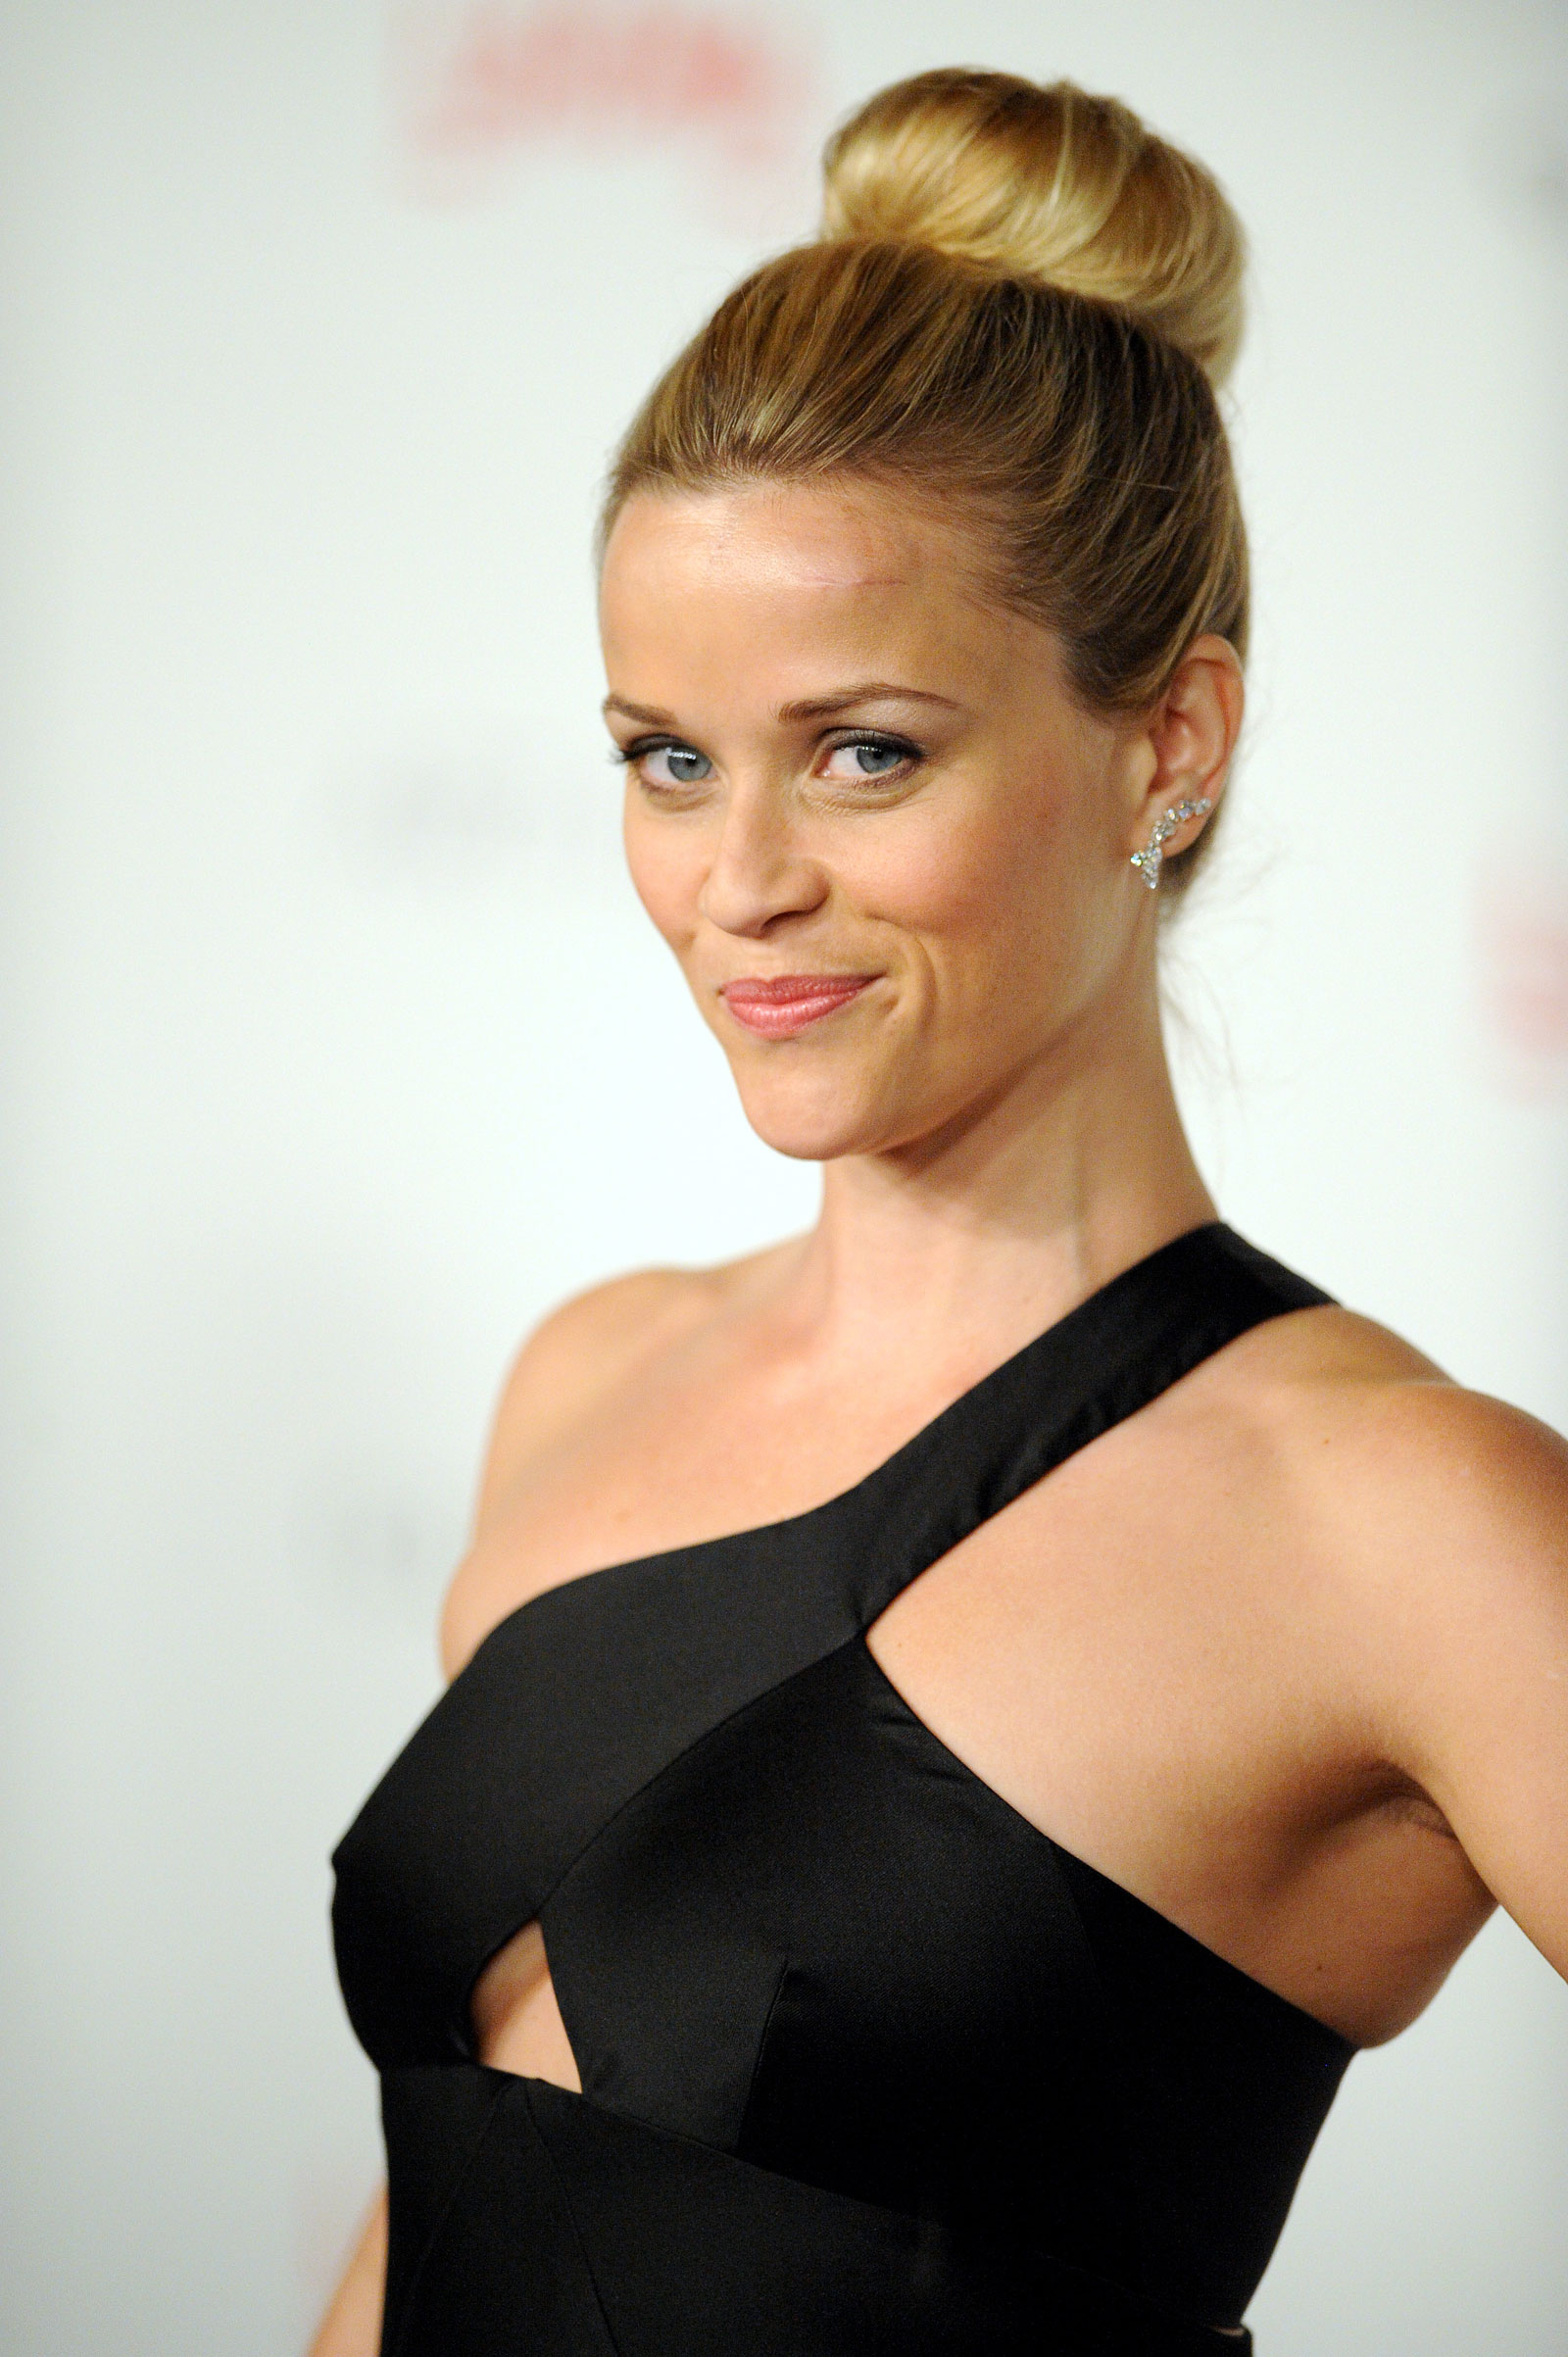 Reese Witherspoon at LACMA Inaugural Art and Film Gala in Los Angeles ... Reese Witherspoon